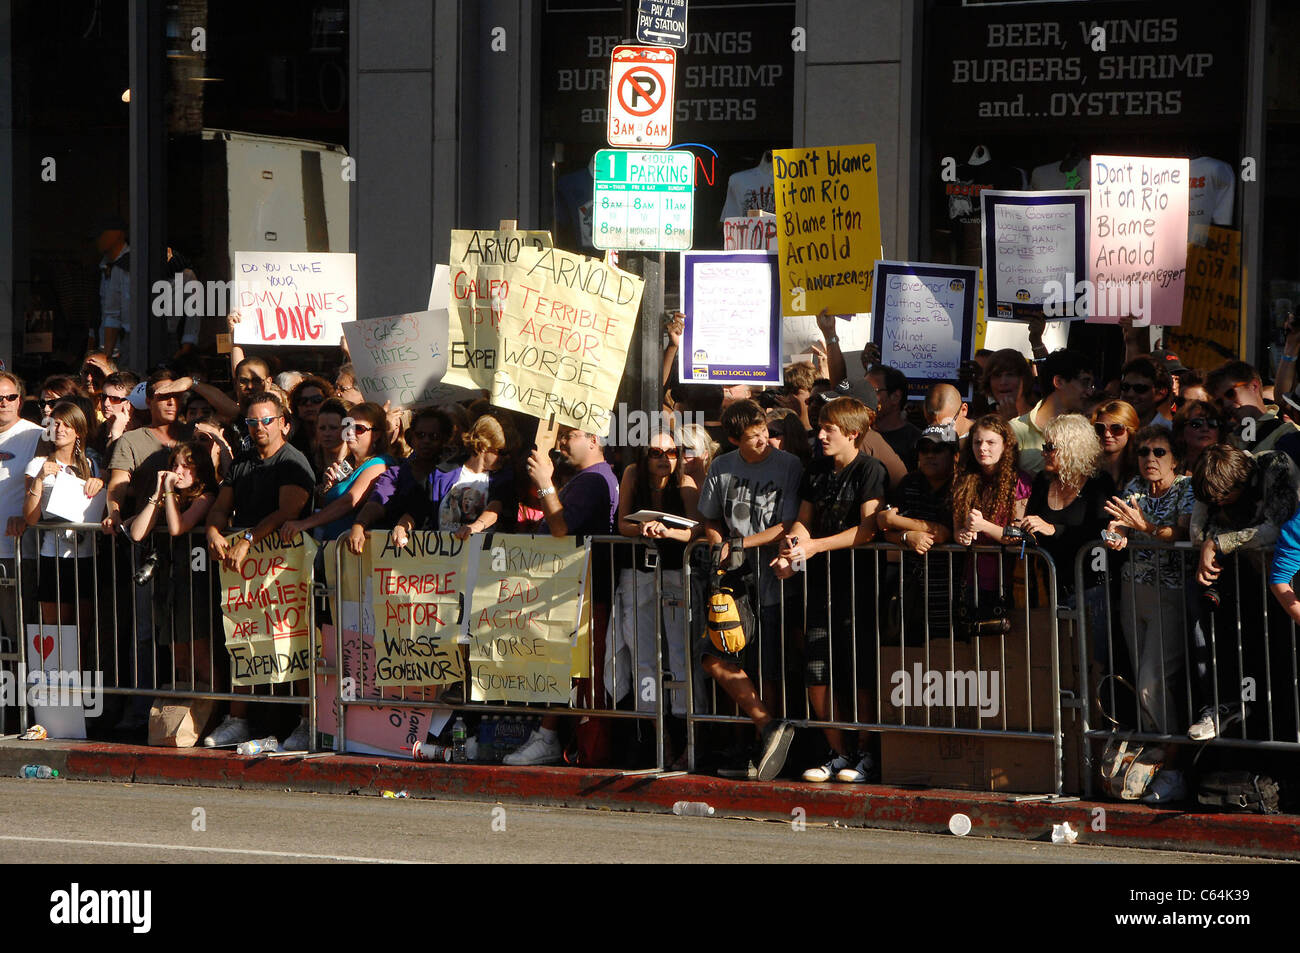 Protestors at arrivals for THE EXPENDABLES Premiere, Grauman's Chinese Theatre, Los Angeles, CA August 3, 2010. - Stock Image